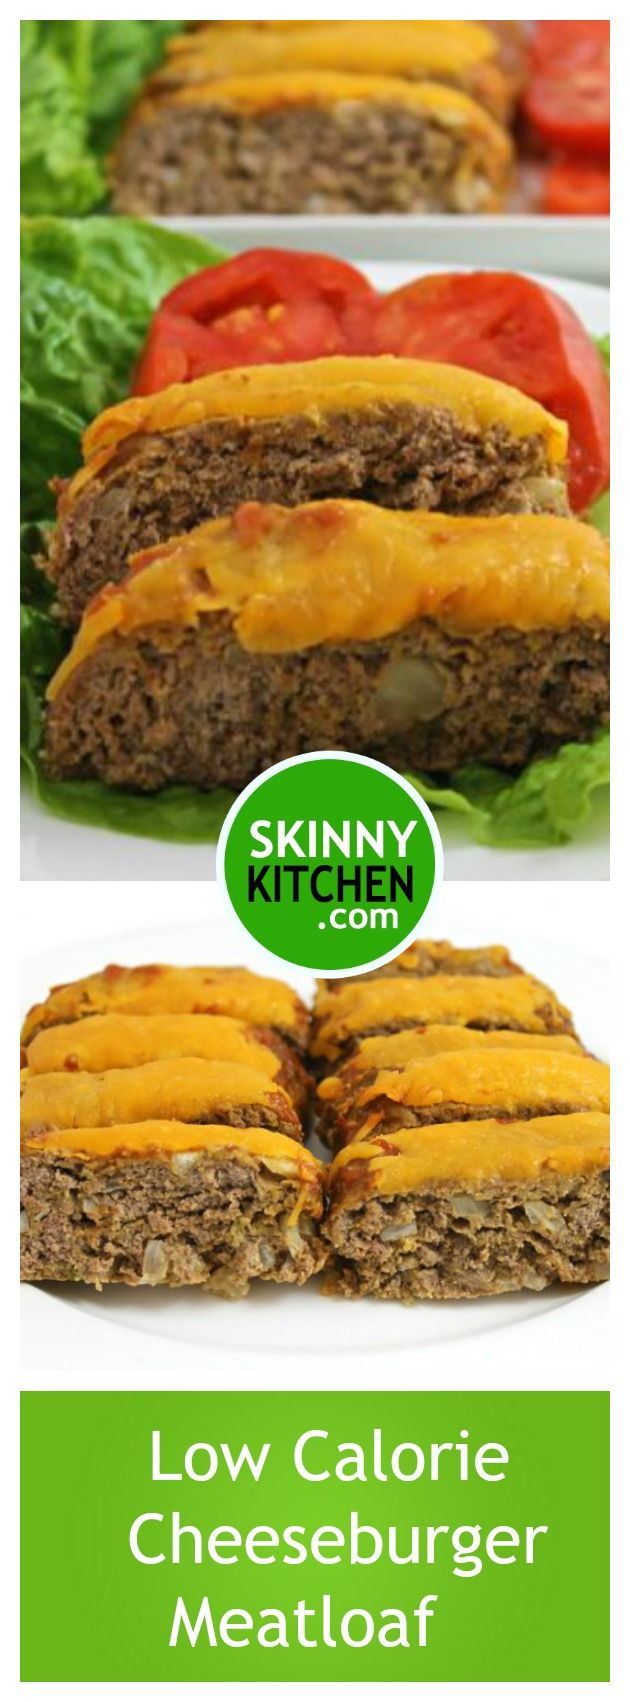 (NEW) Low Calorie Cheeseburger Meatloaf. It's extremely delicious and perfect for any night. Each 2 slice serving, 229 cal, 8g fat & 6 SmartPoints. http://www.skinnykitchen.com/recipes/low-calorie-cheeseburger-meatloaf/